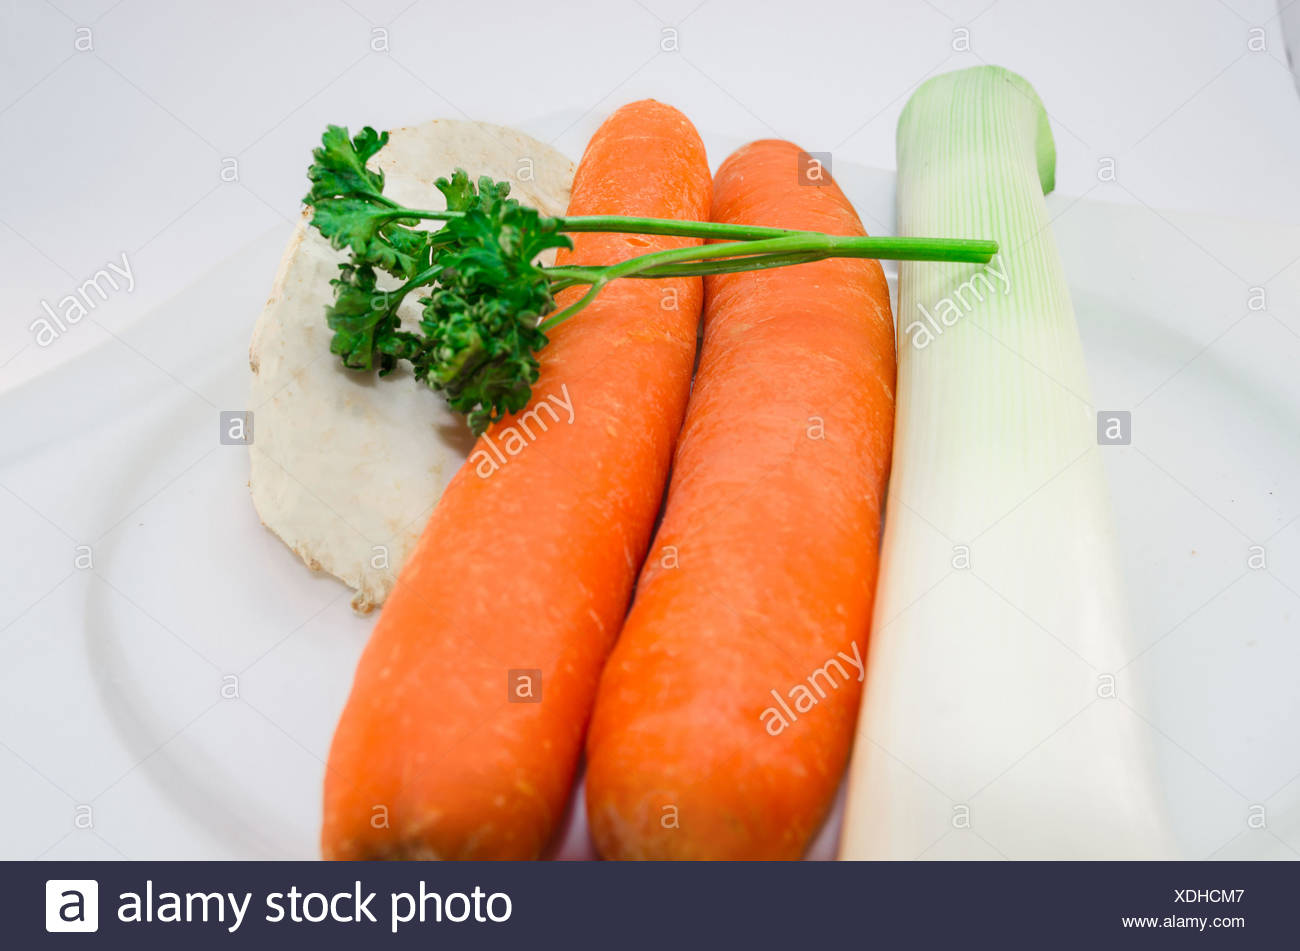 Soups vegetables - Stock Image